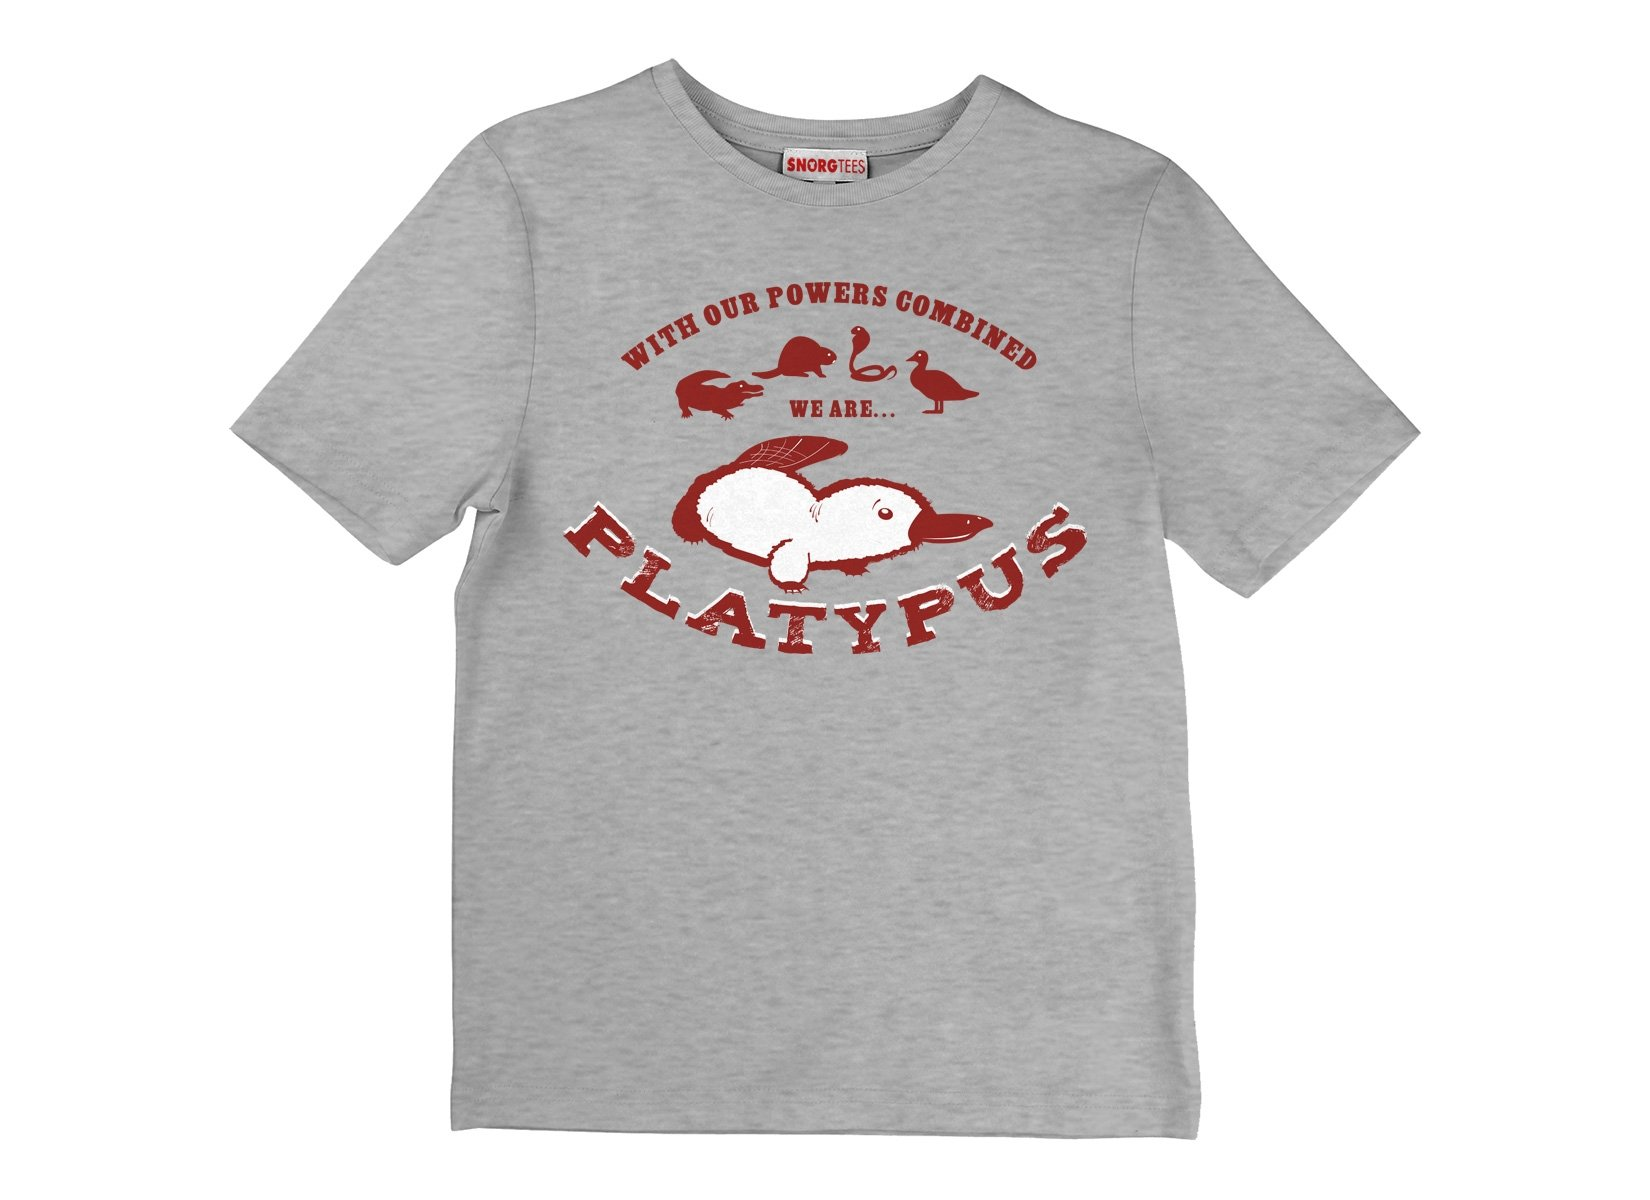 Our Powers Combined... on Kids T-Shirt